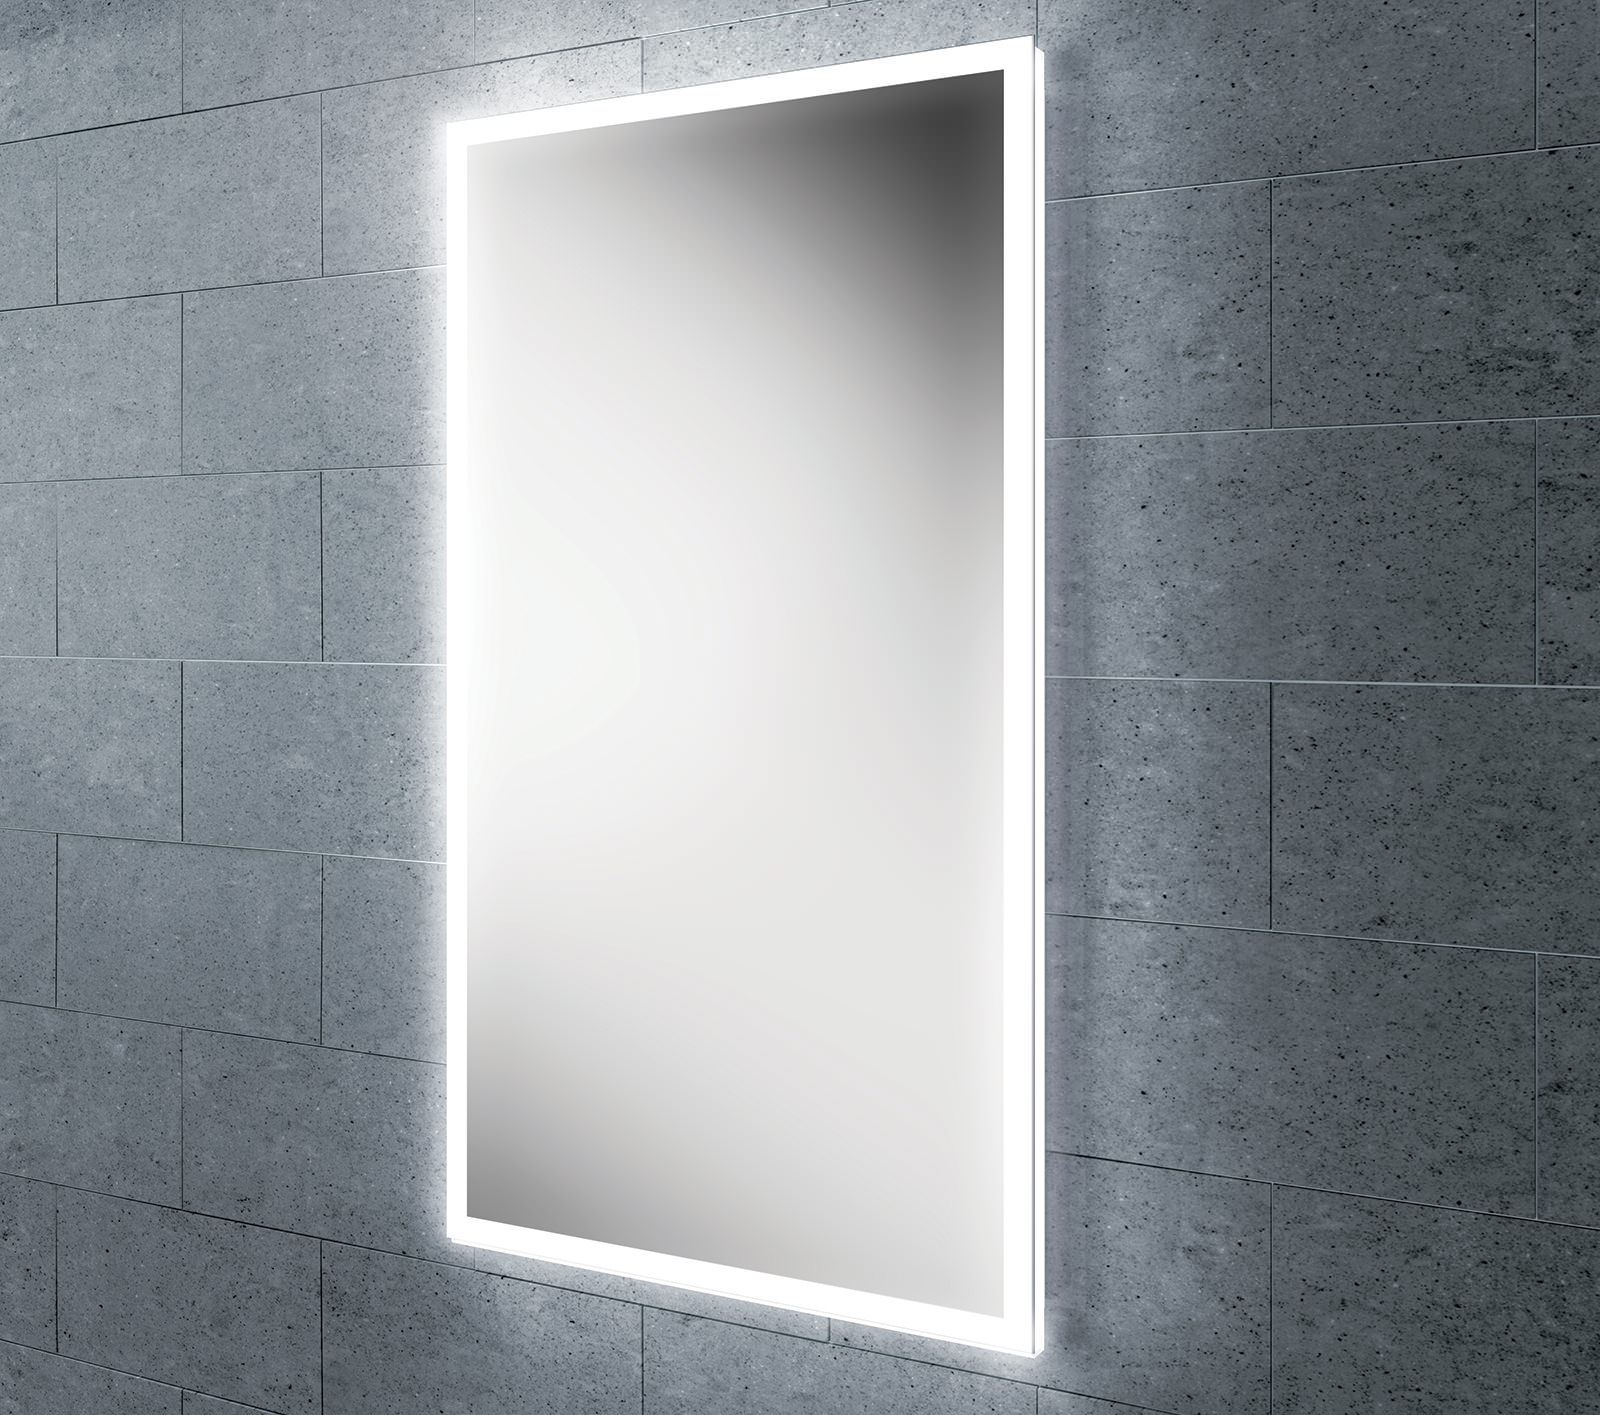 hib globe 45 steam free led mirror with ambient lighting 16250